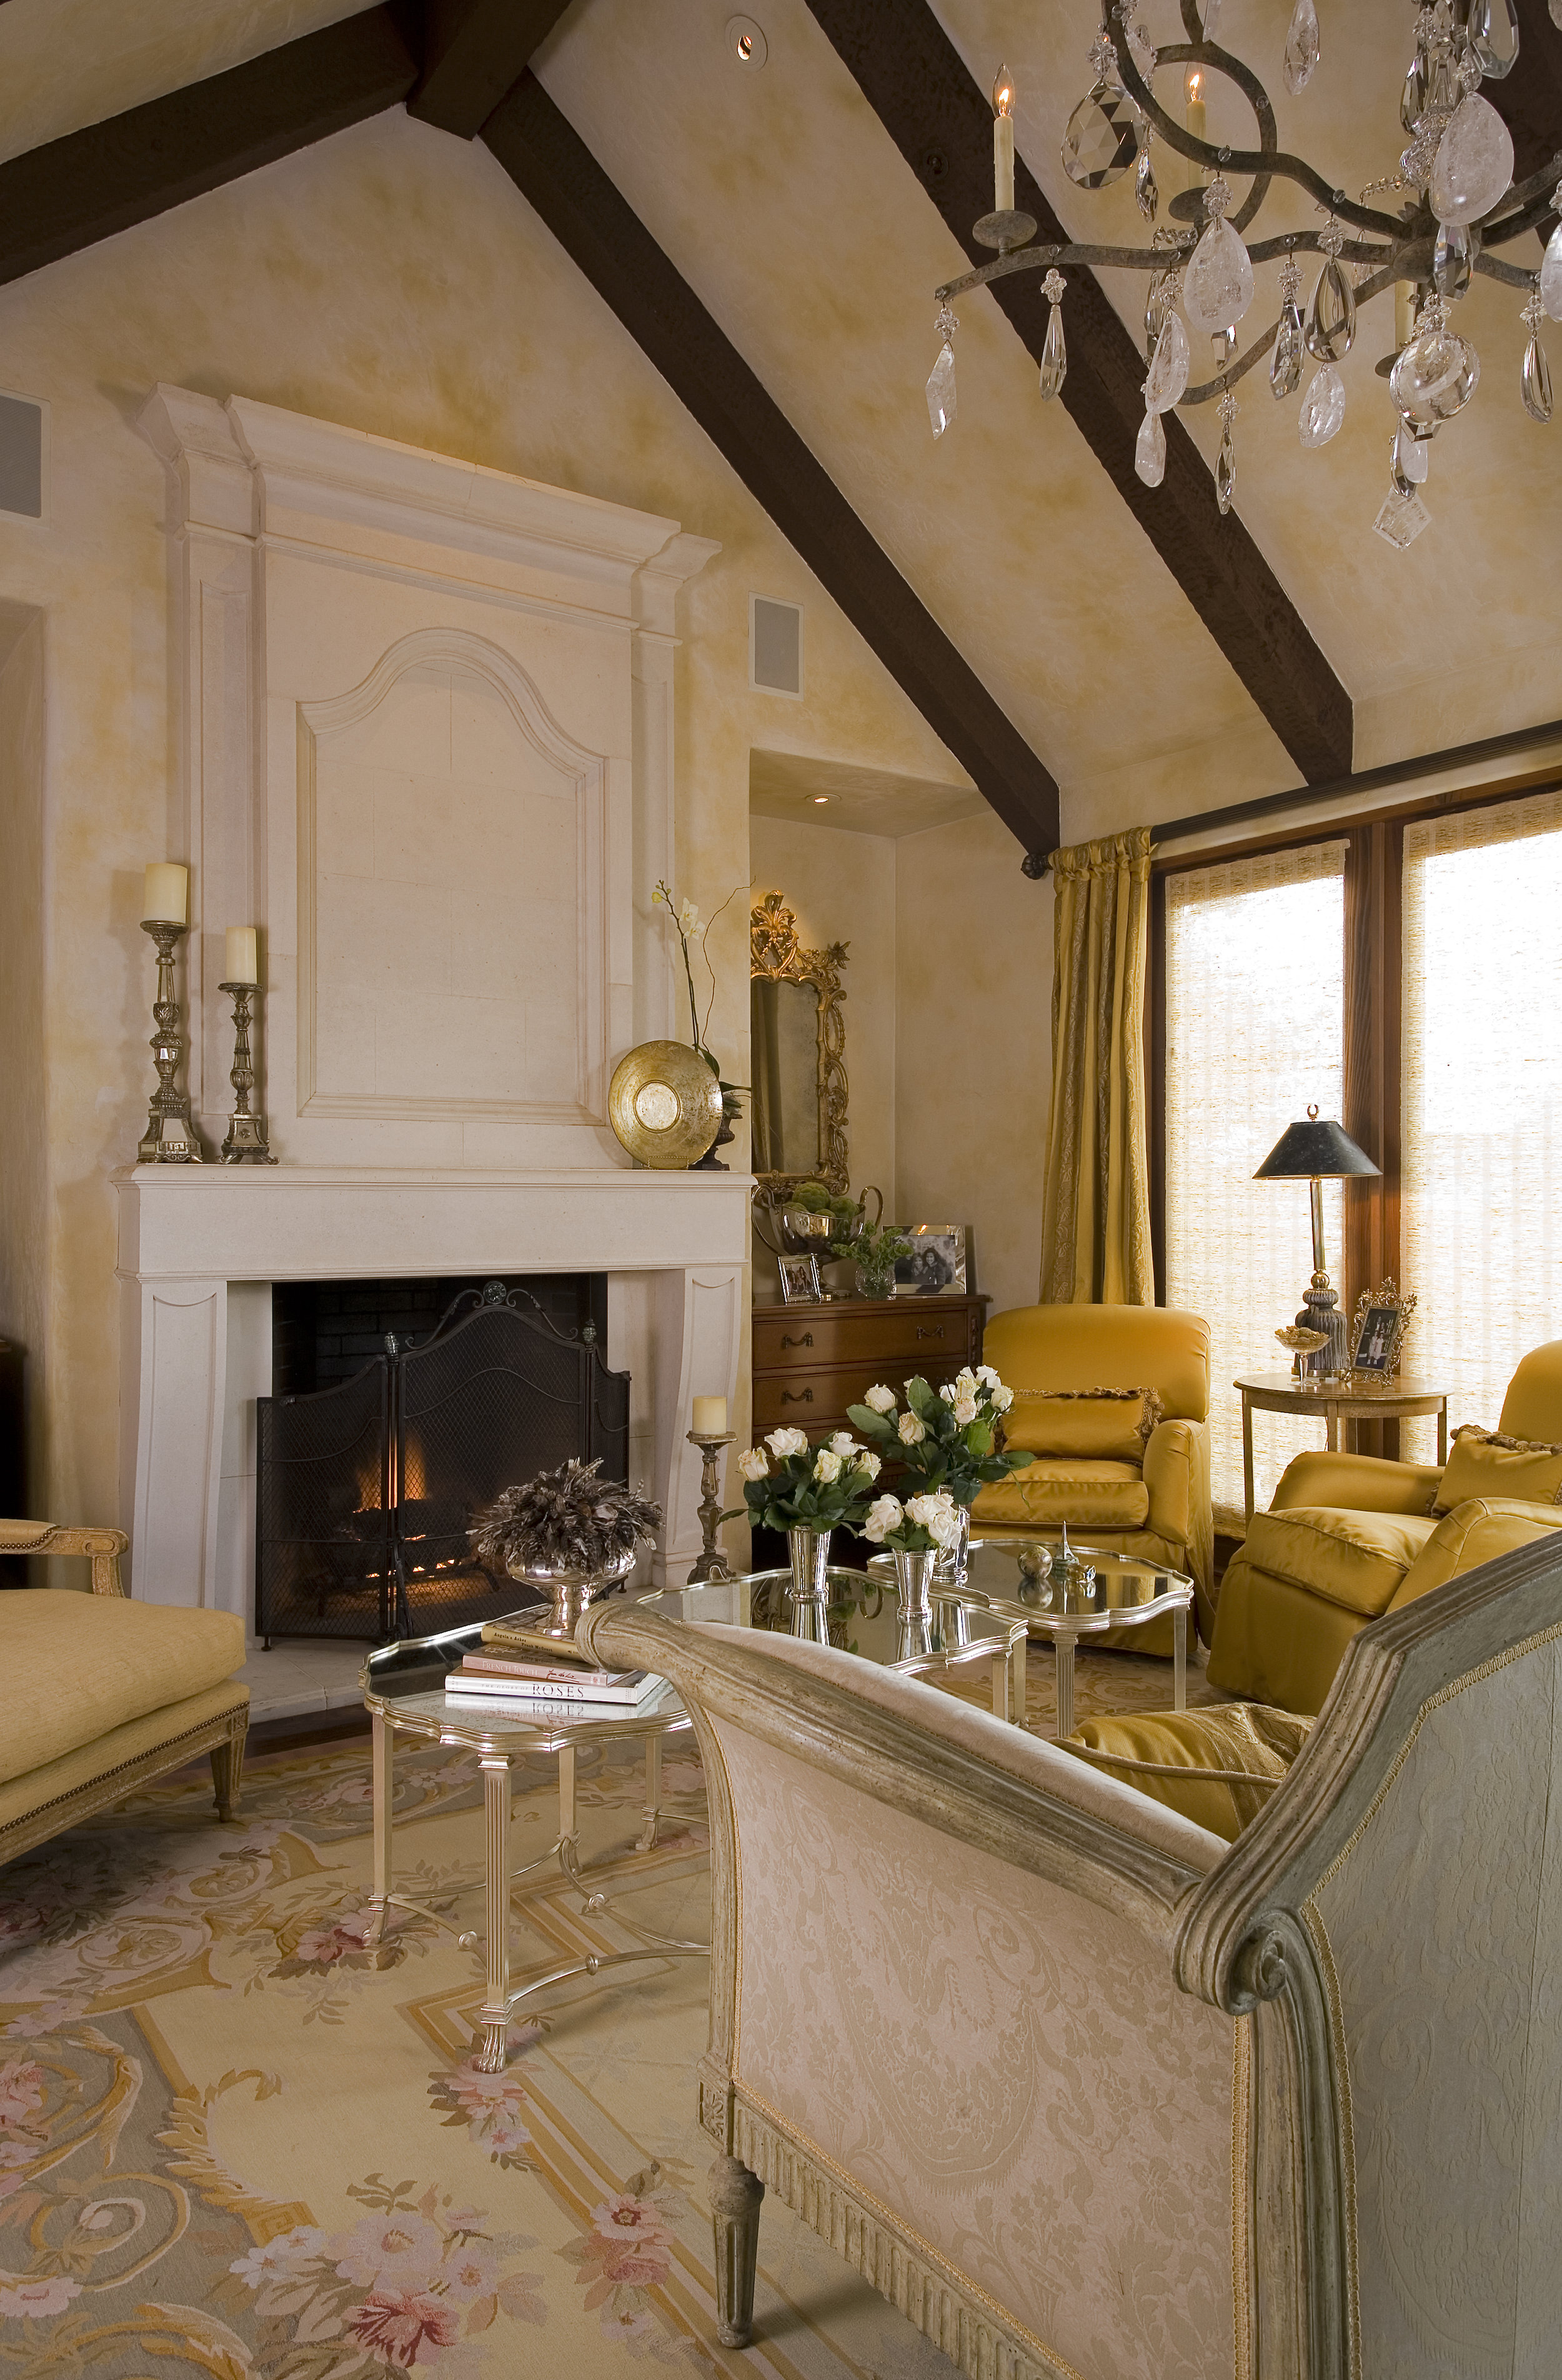 MACHADO - LIVING ROOM 1.jpg